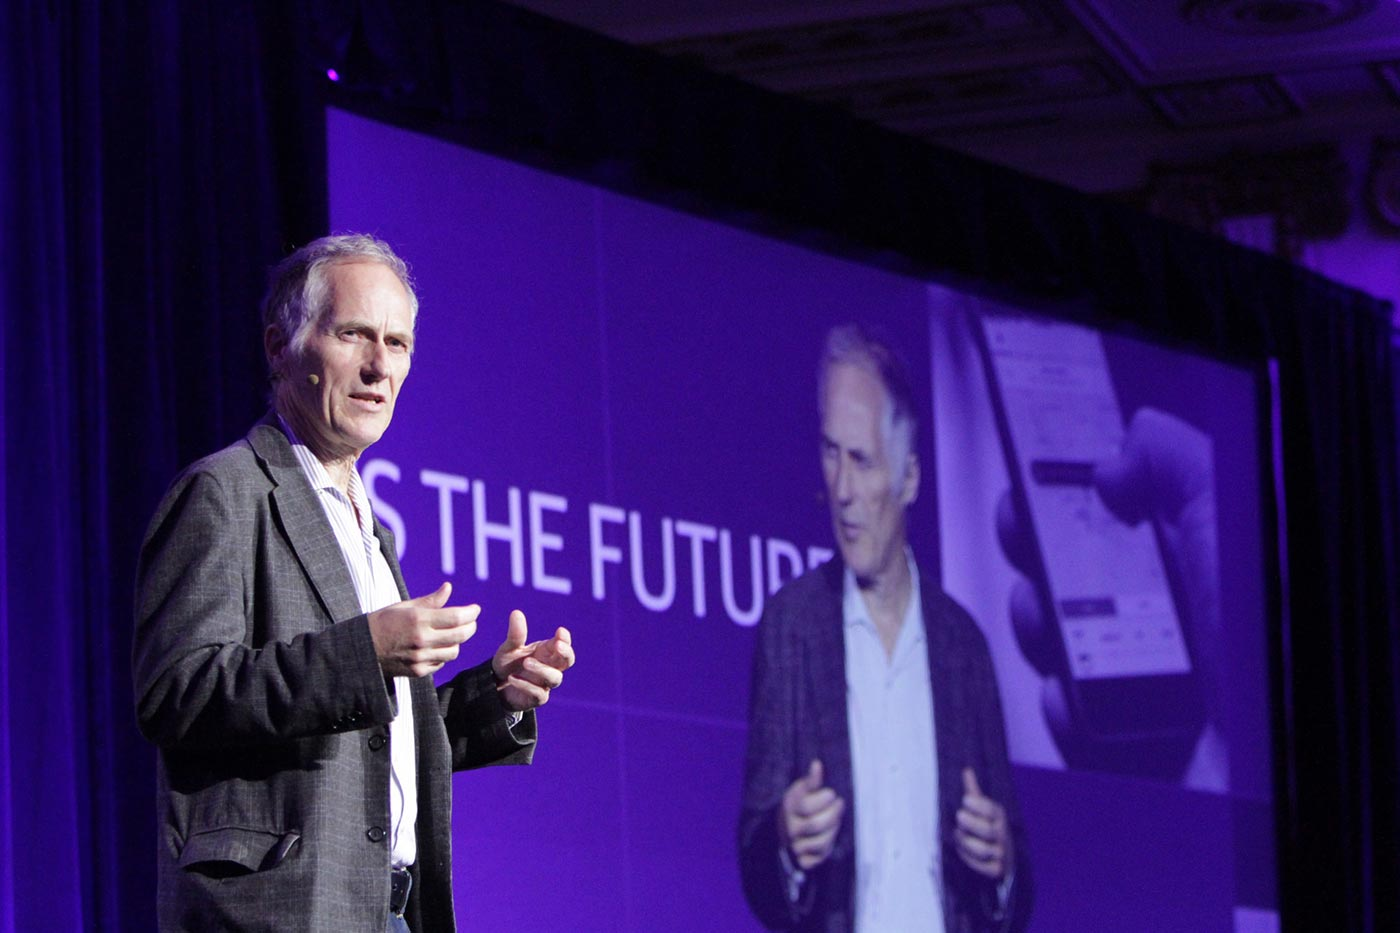 Tim O'Reilly on stage at Next:Economy 2015.